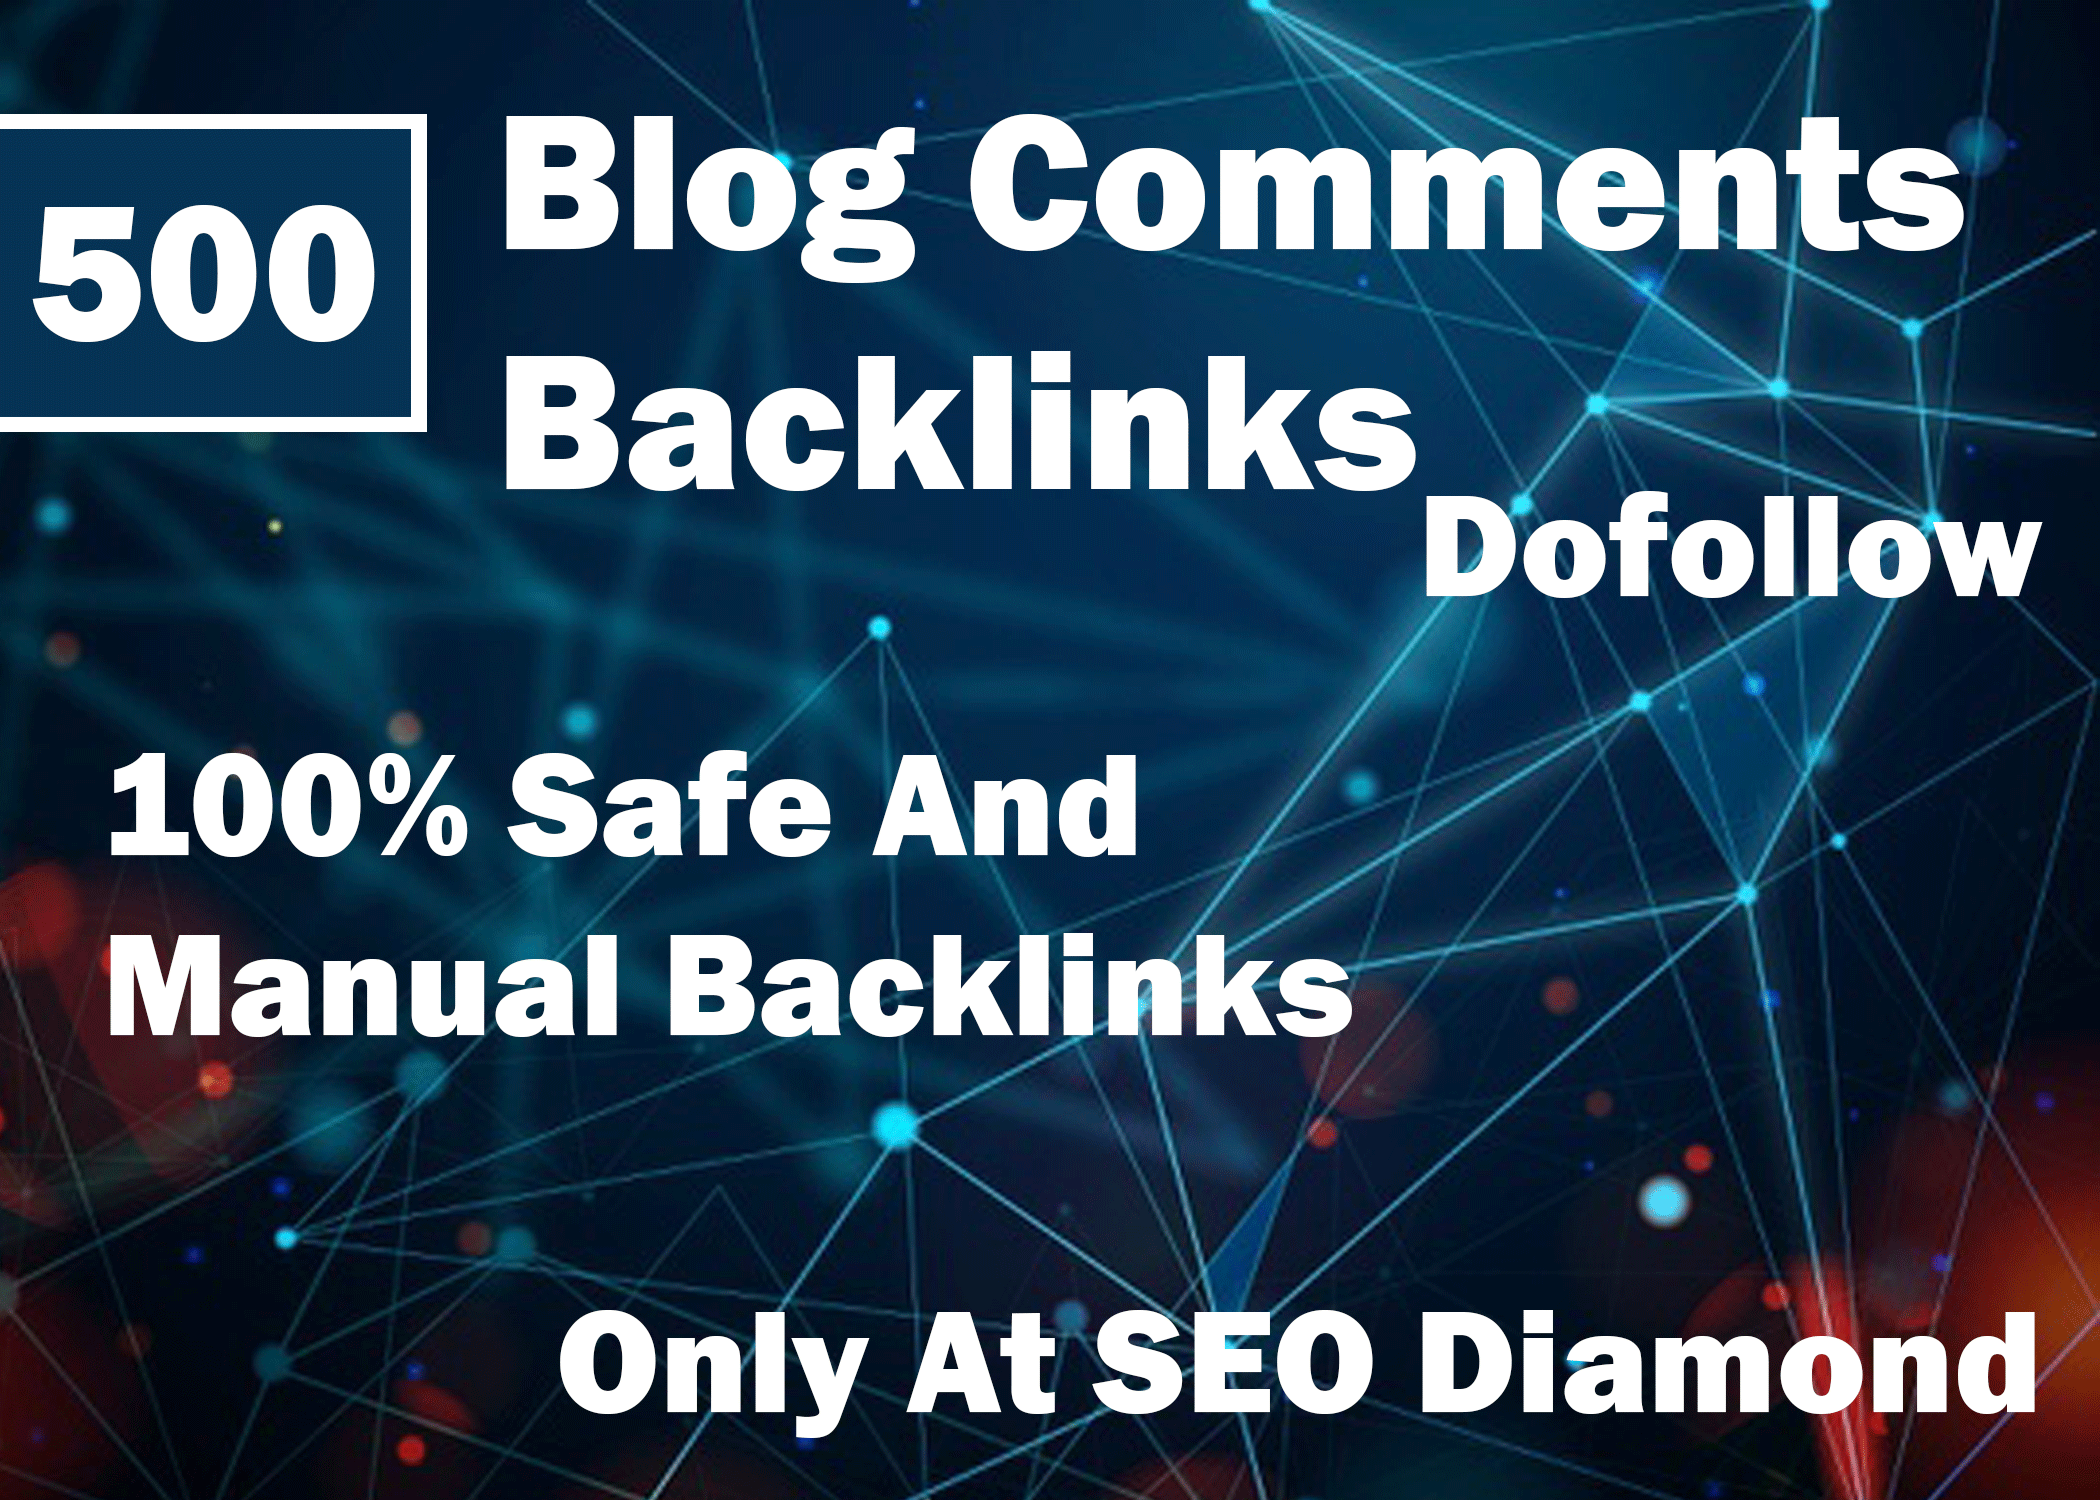 500 Unique Blog Comments With High Quality Backlinks